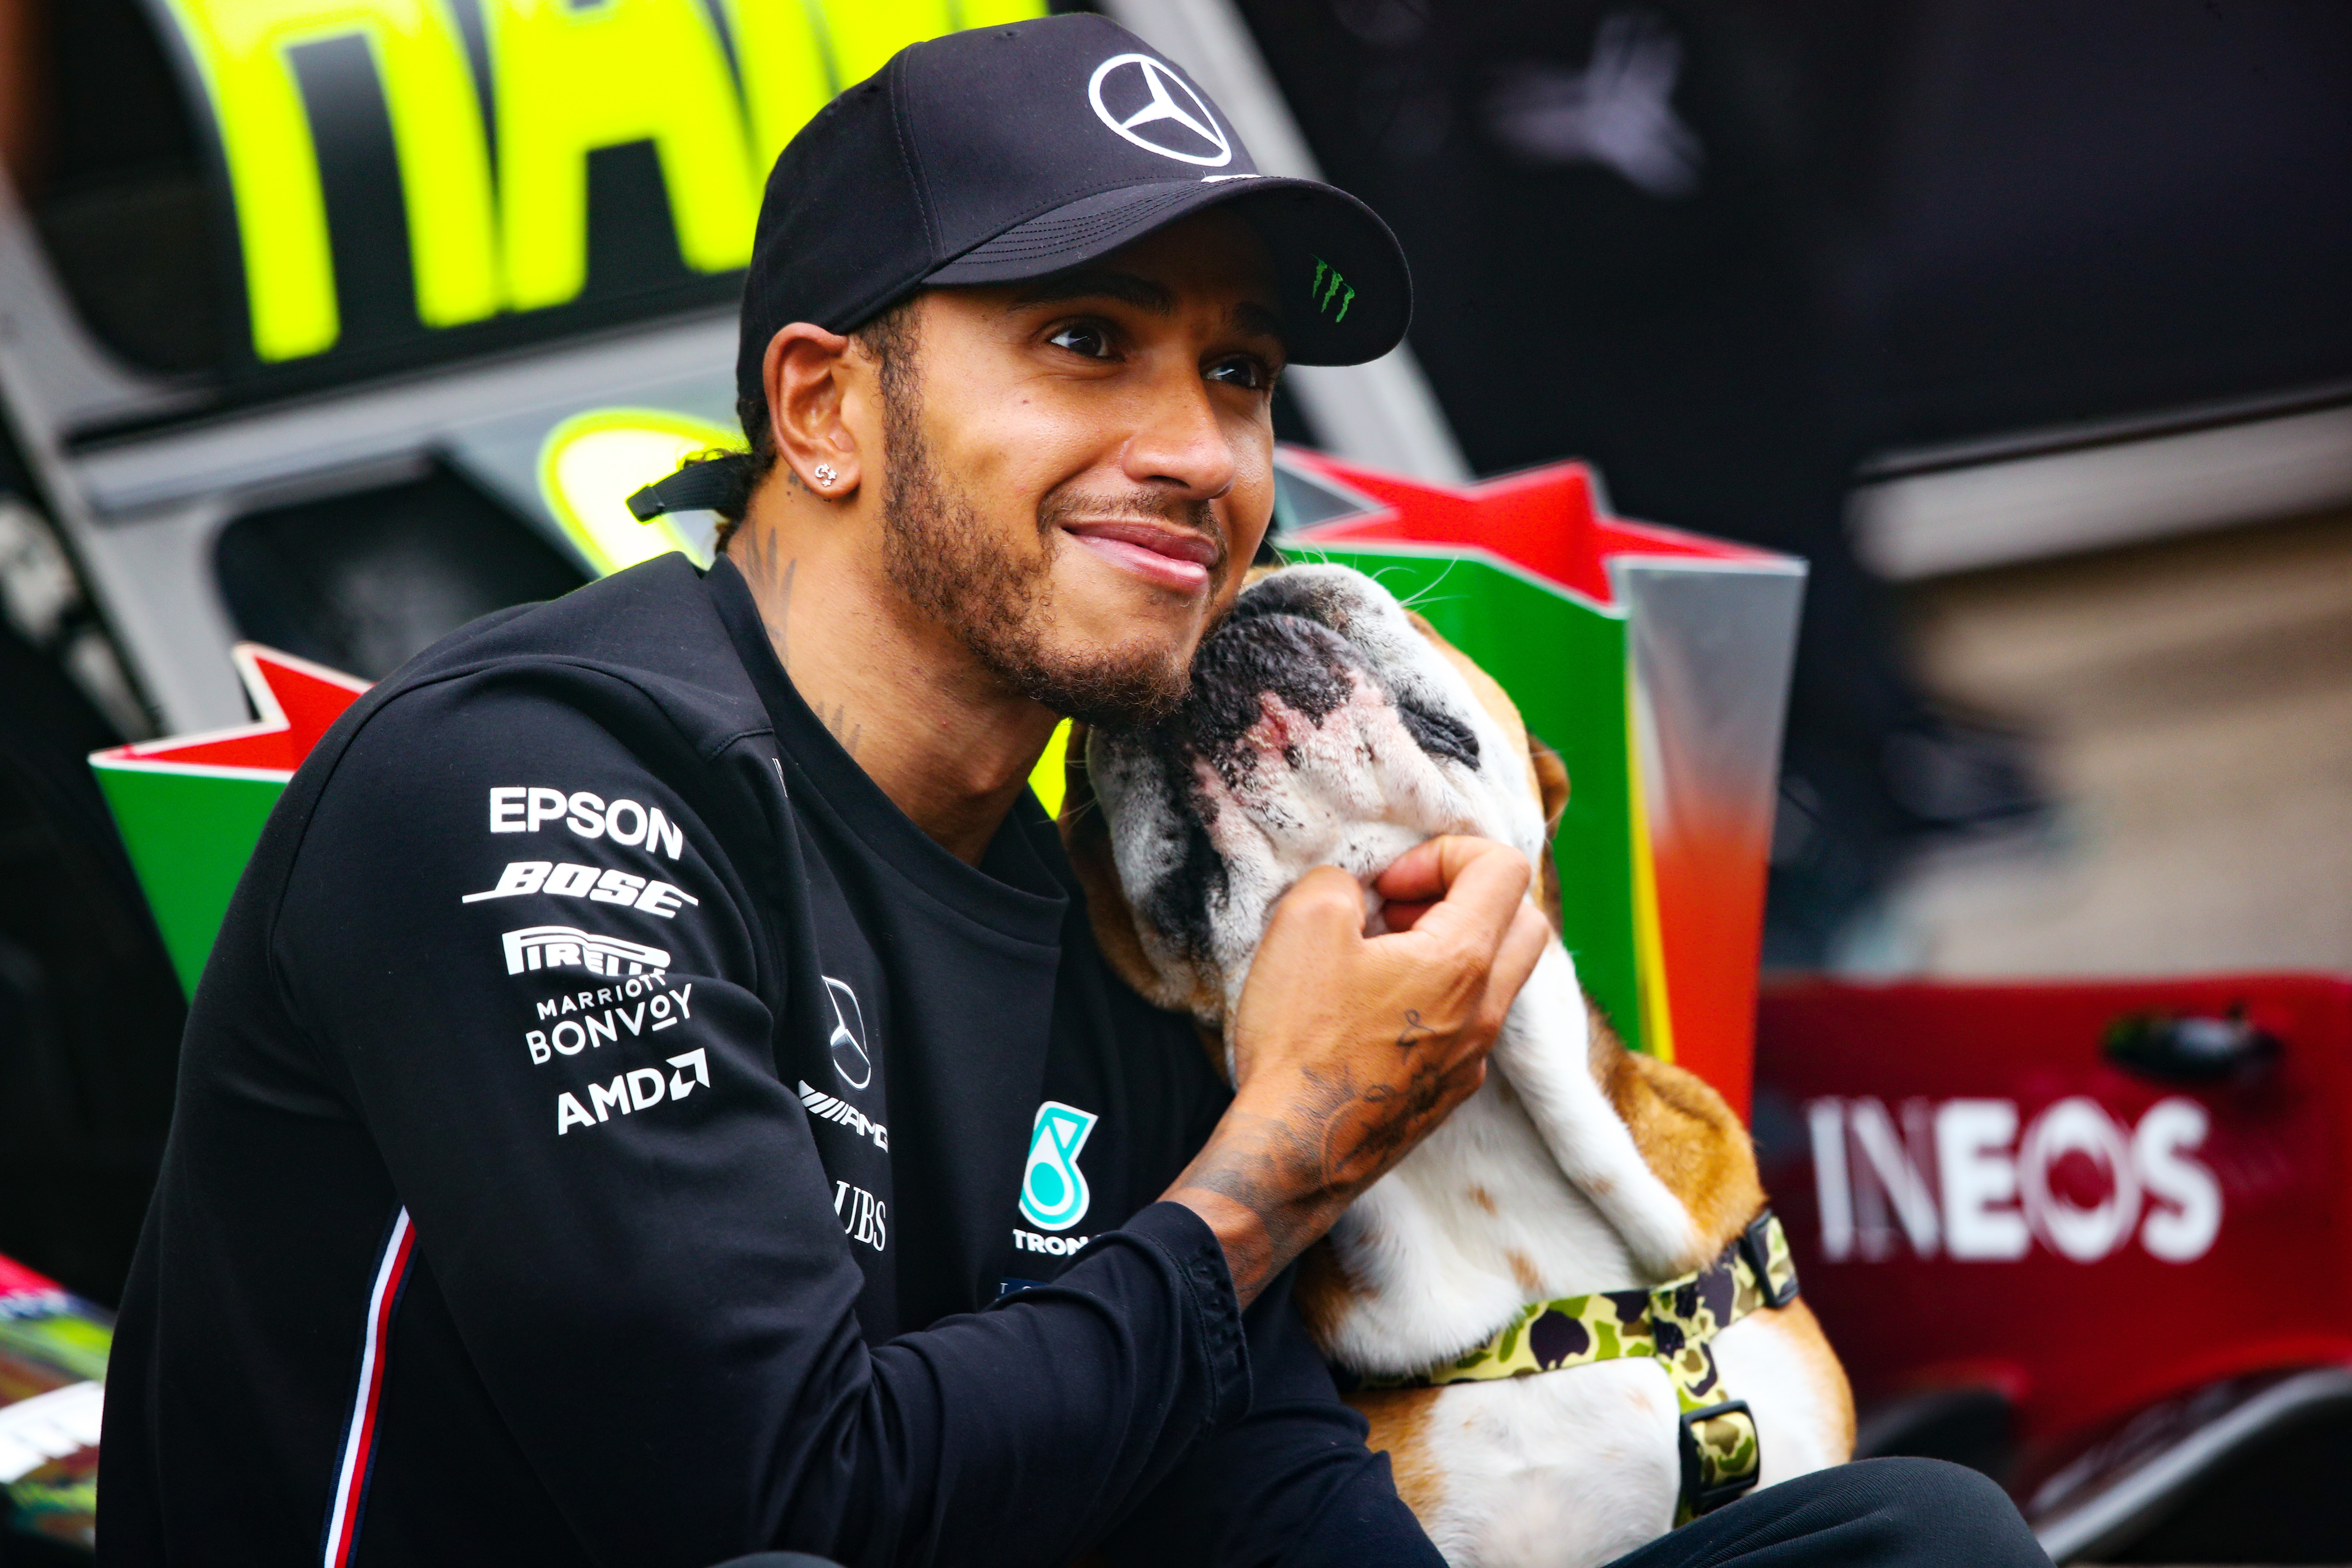 Race winner Lewis Hamilton of Mercedes GP celebrates with his bulldog Roscoe after the 2020 F1 Grand Prix of Portugal